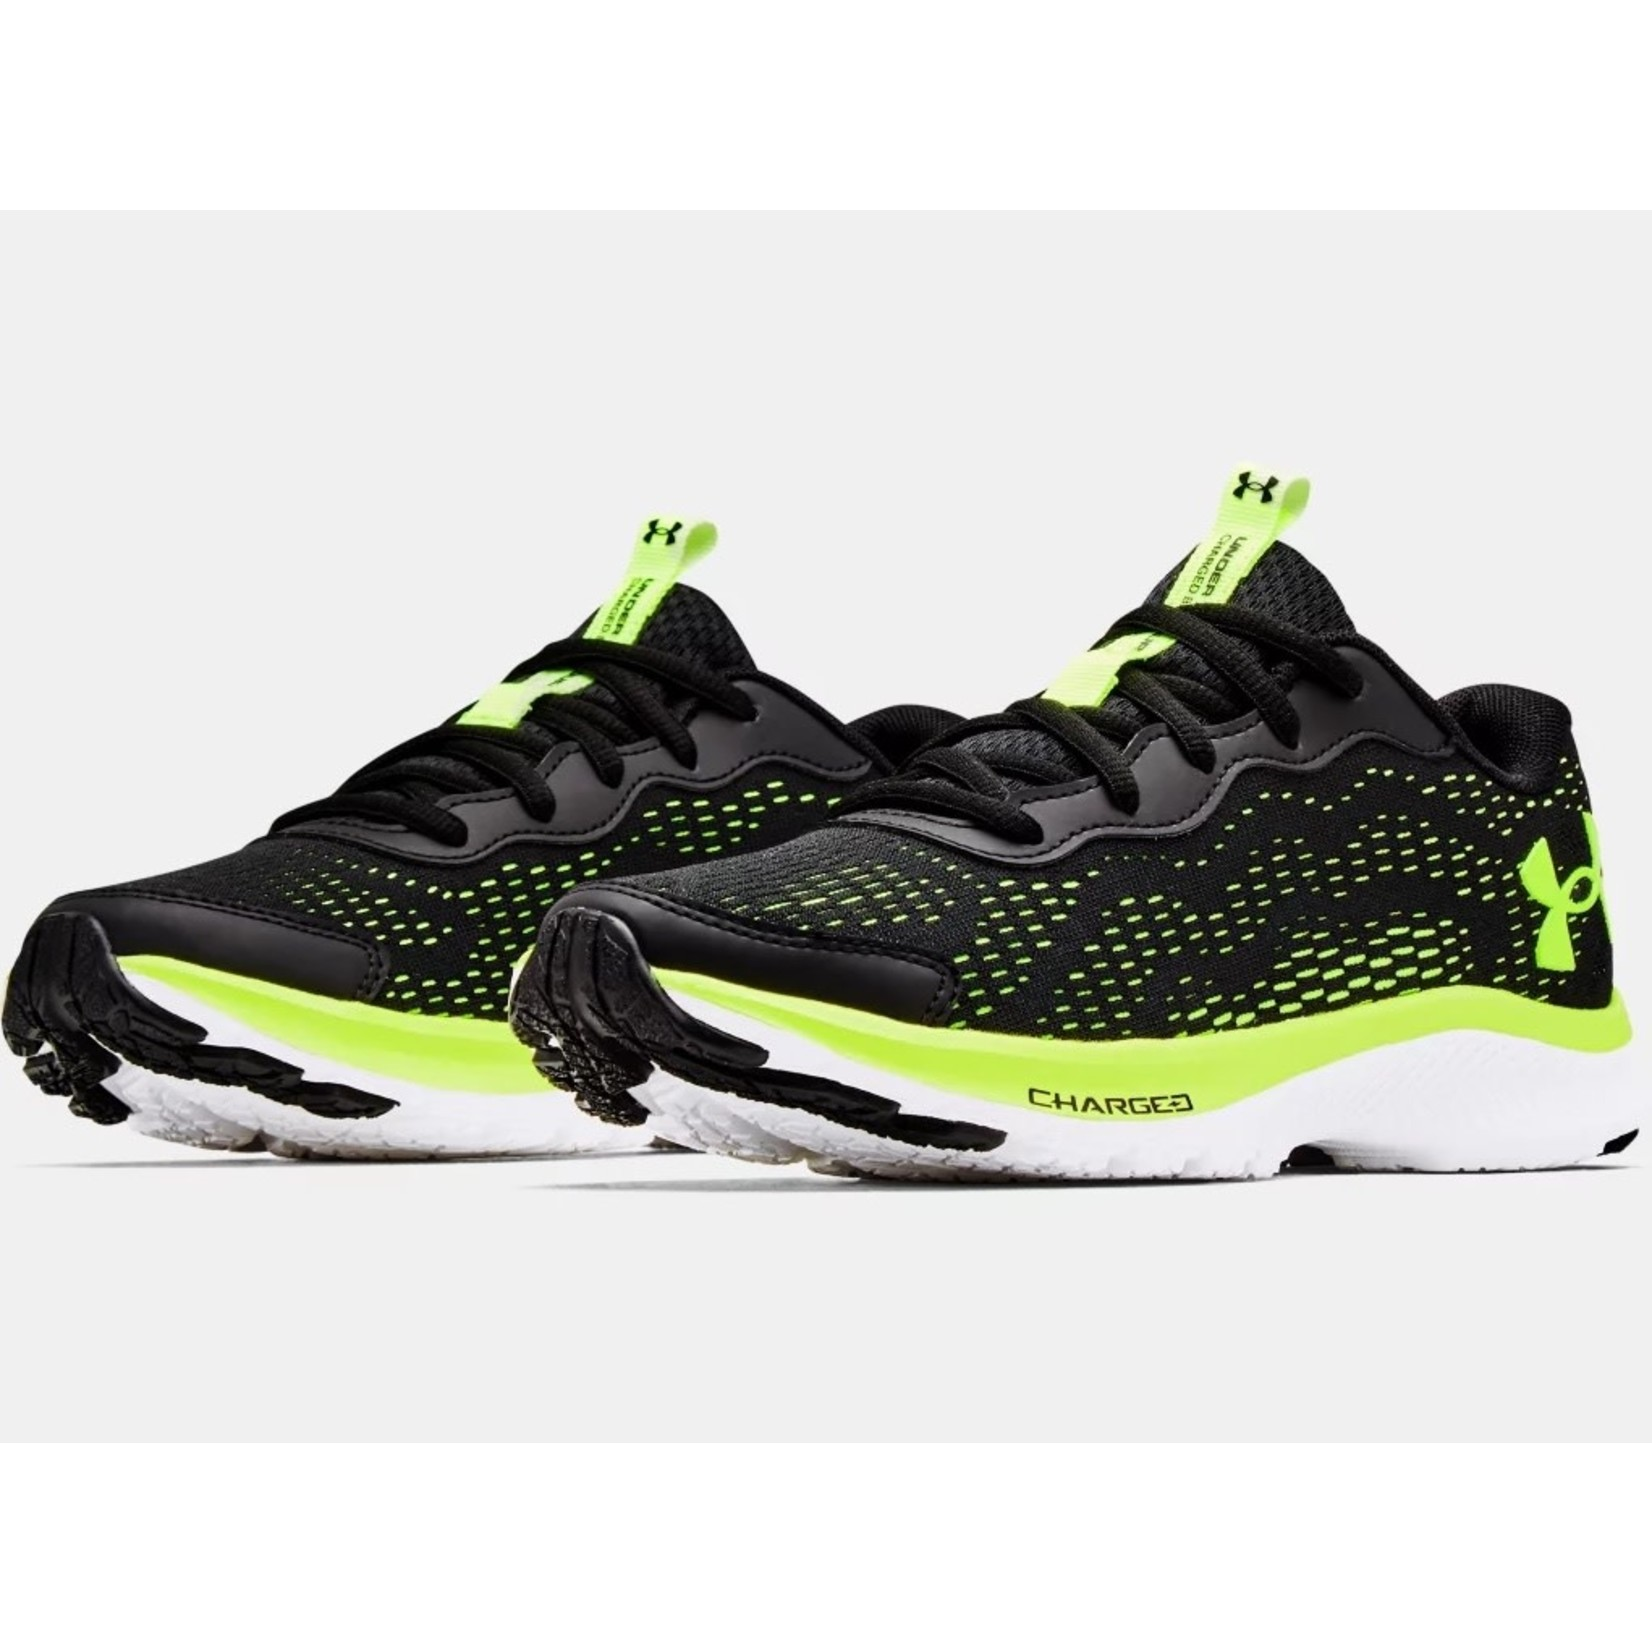 Under Armour Under Armour Running Shoes, Charged Bandit 7, BGS, Boys